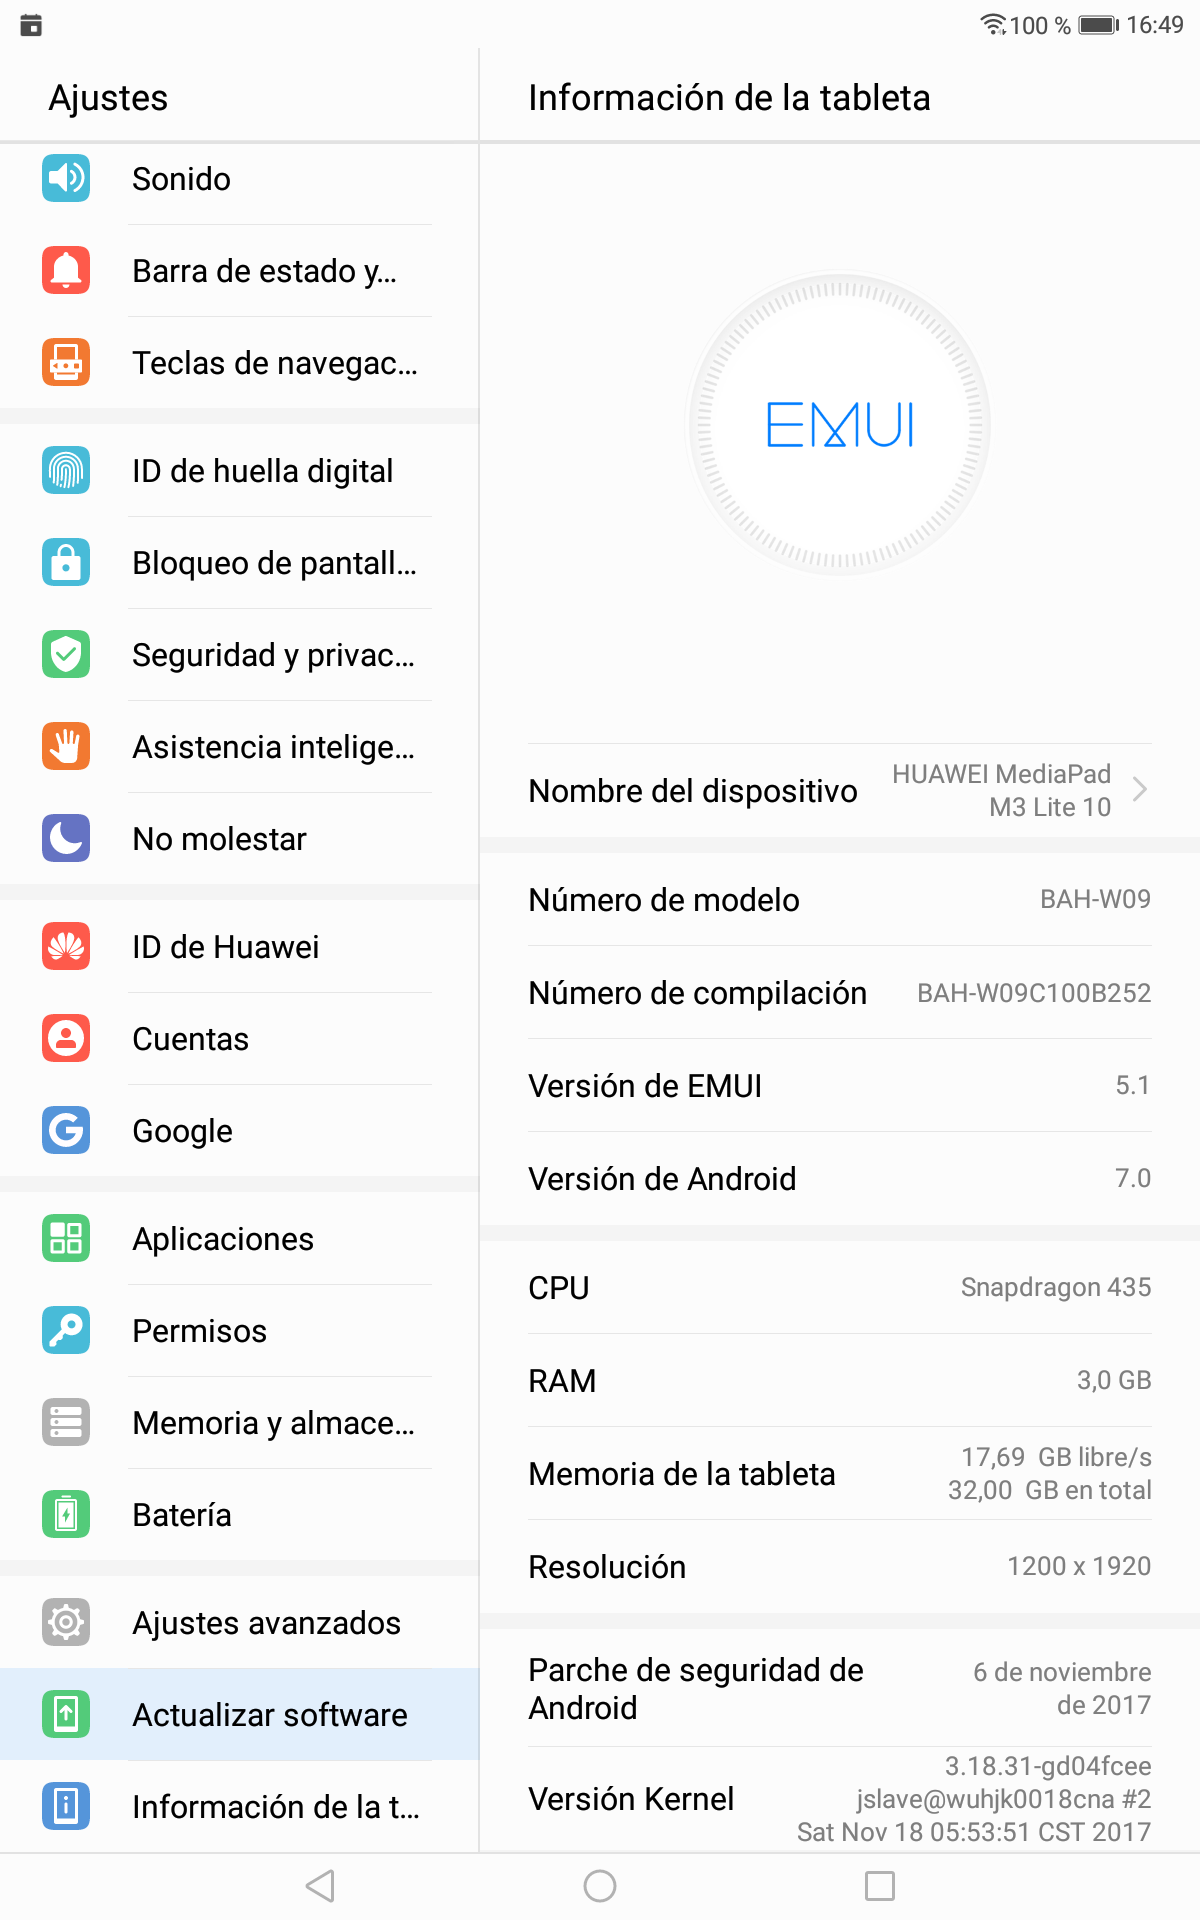 emui 5.1 android 7.0.png